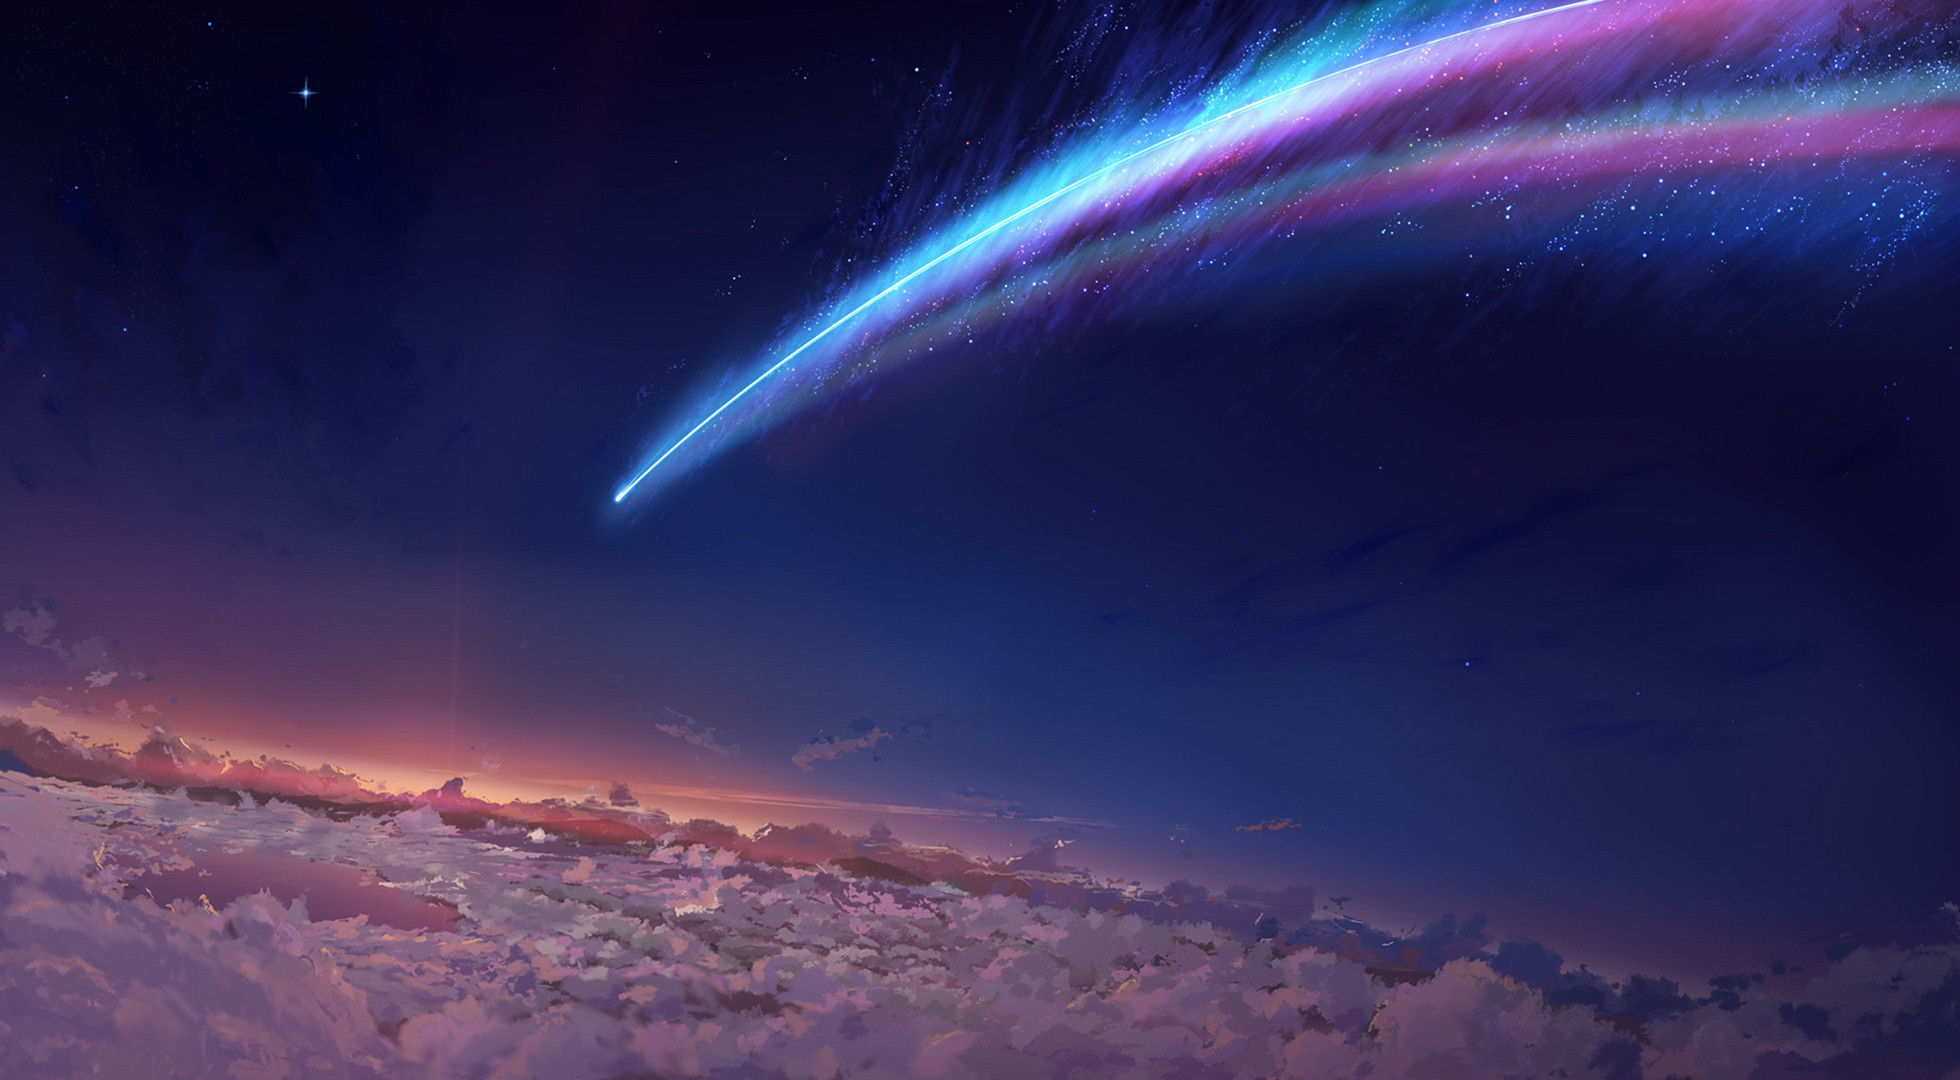 Res: 1960x1080, HD Wallpaper | Background Image ID:737385